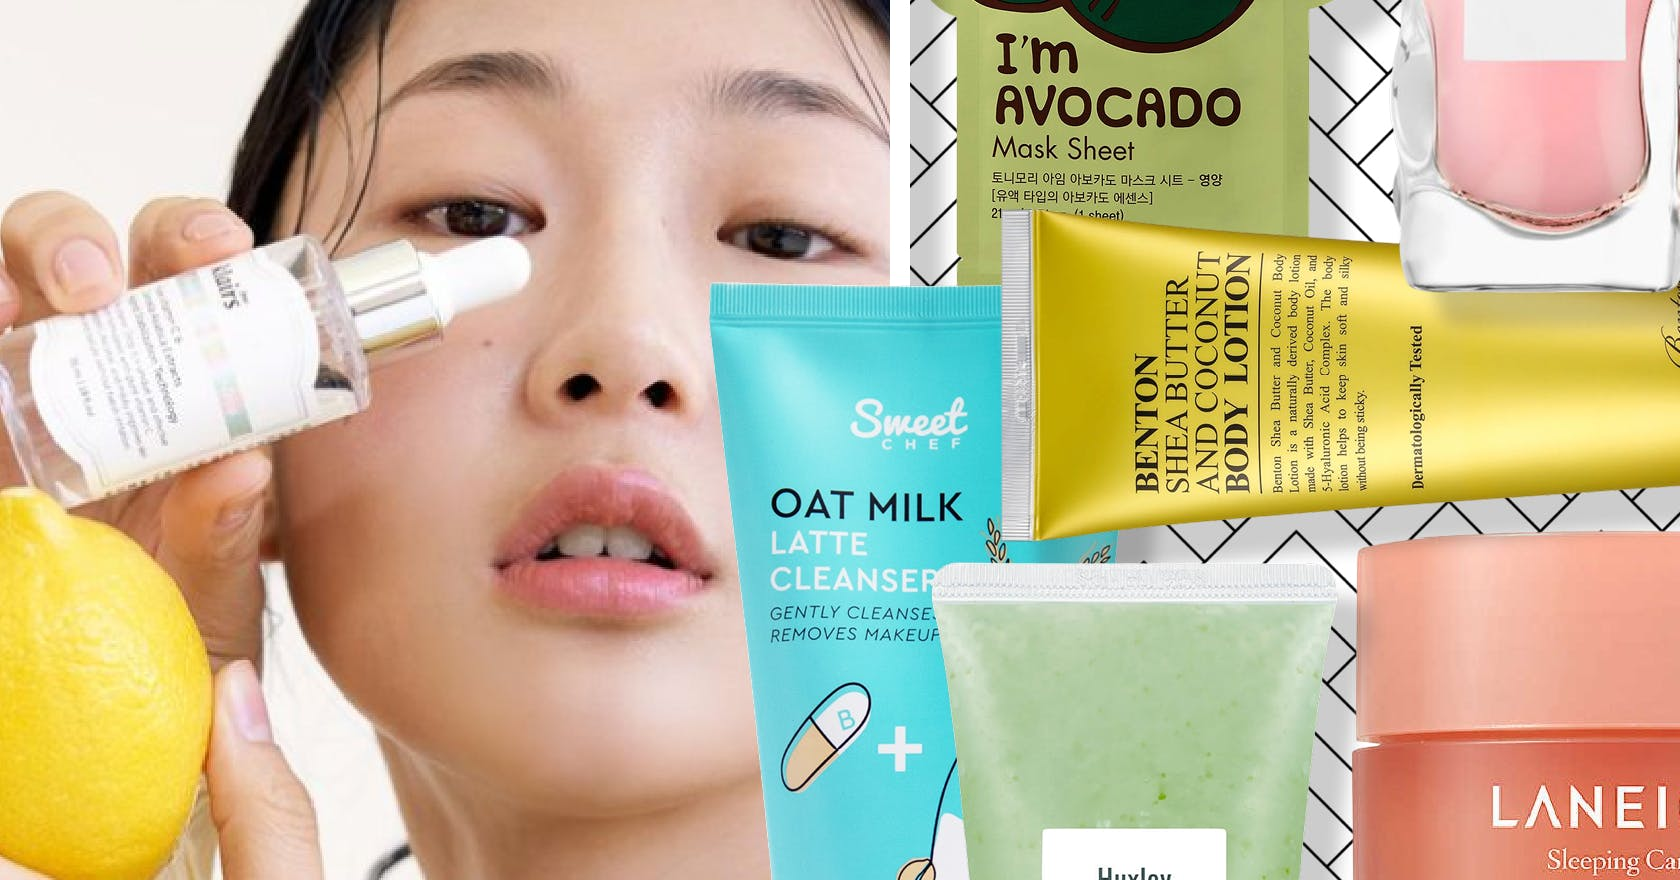 From egg protein toners to rubber face masks, here are 10 Korean skincare products worth trying